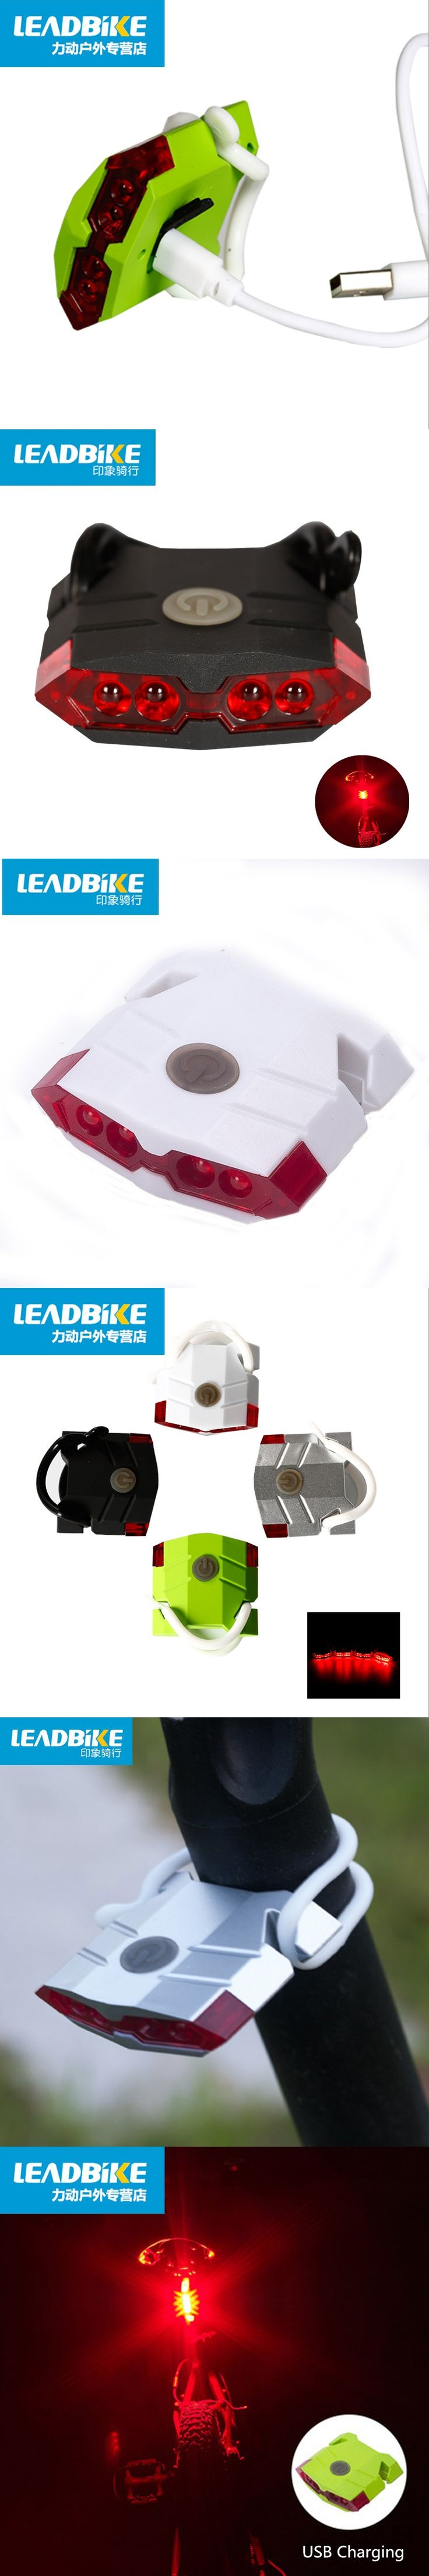 Leadbike Bicycle Rear Light USB Rechargeable ABS 4 LED Waterproof Taillights MTB Road Bike Accessories Hot Sale FreeShipping